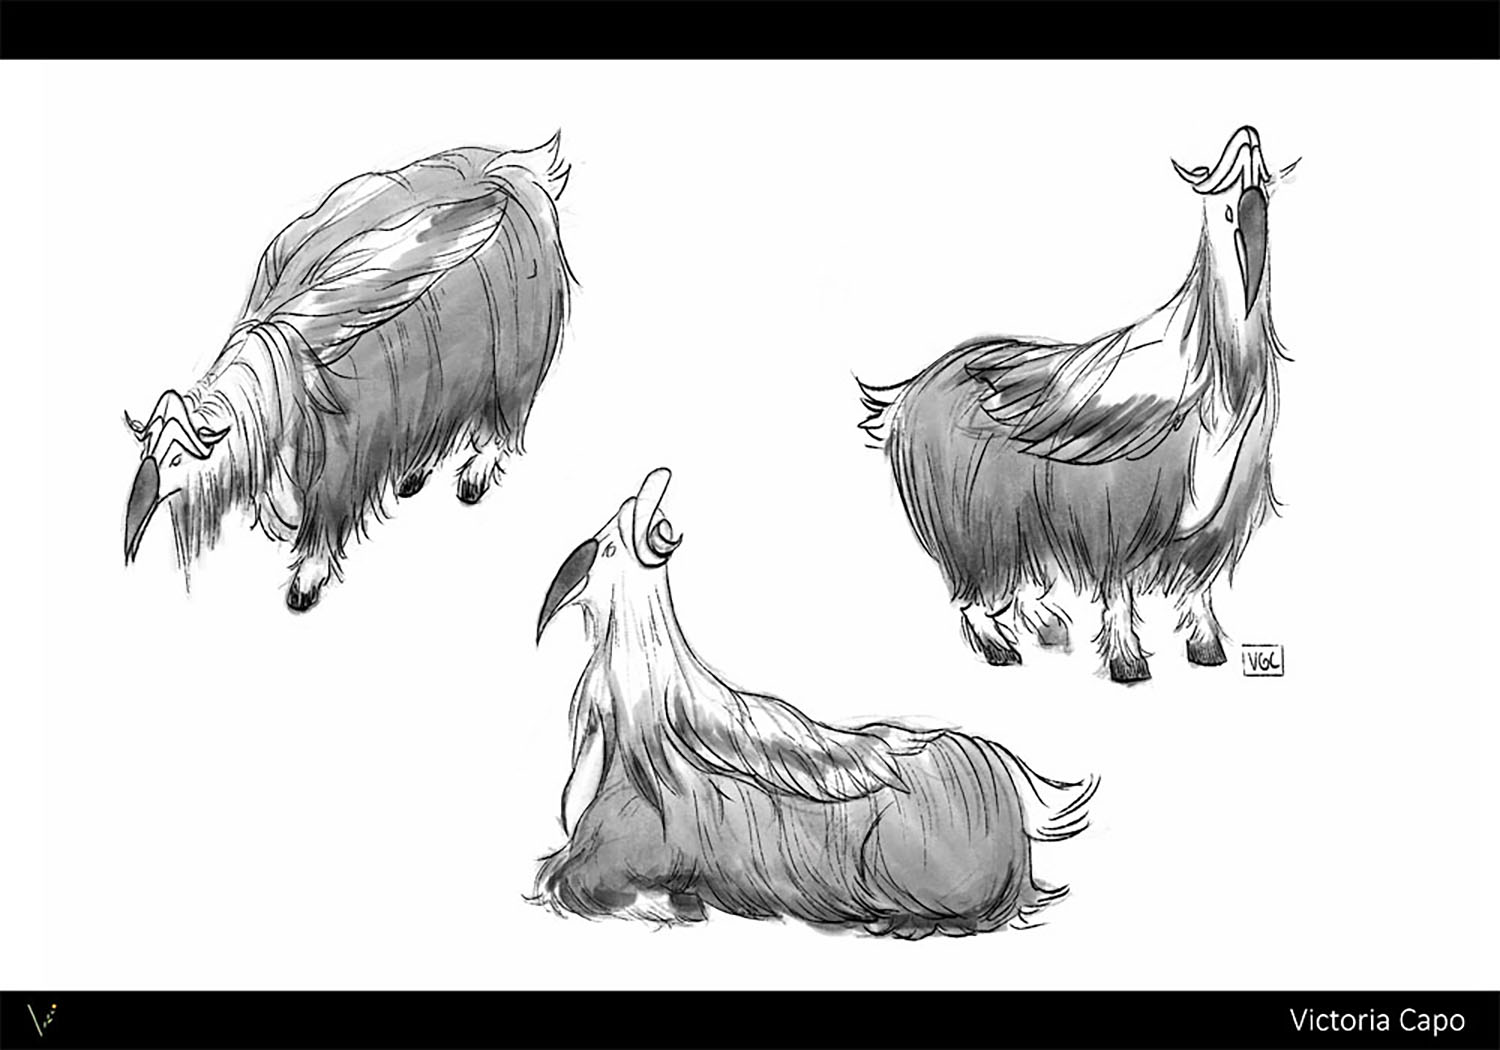 Value studies for a creature hybrid of a markhor goat and a hornbill bird.